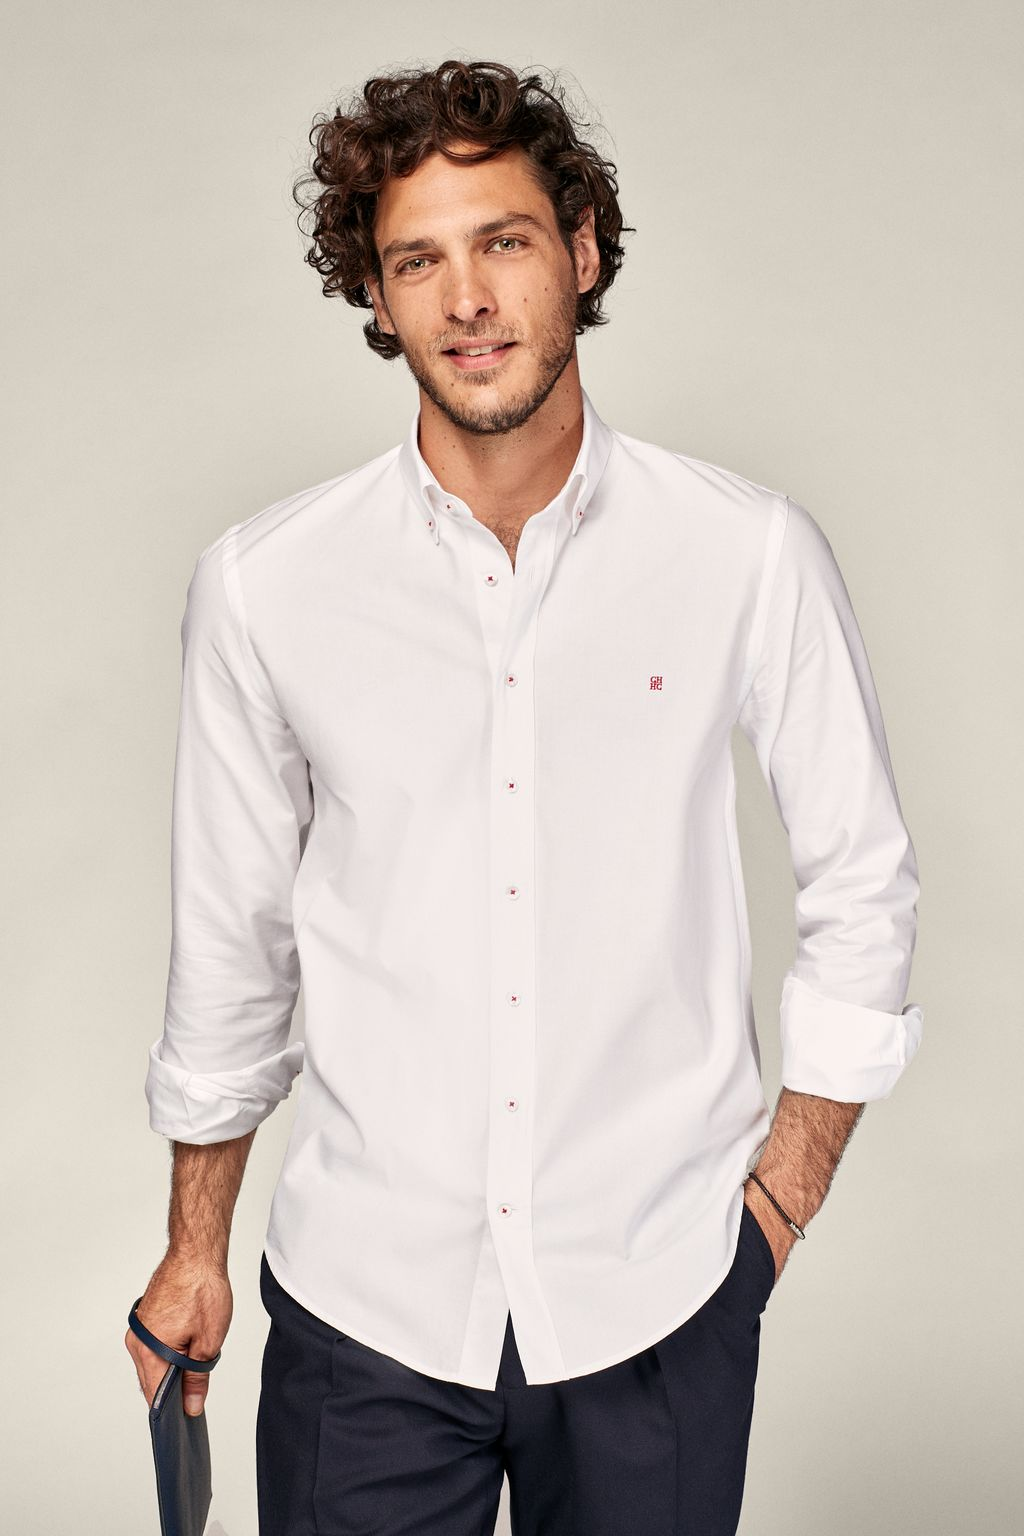 Oxford shirt